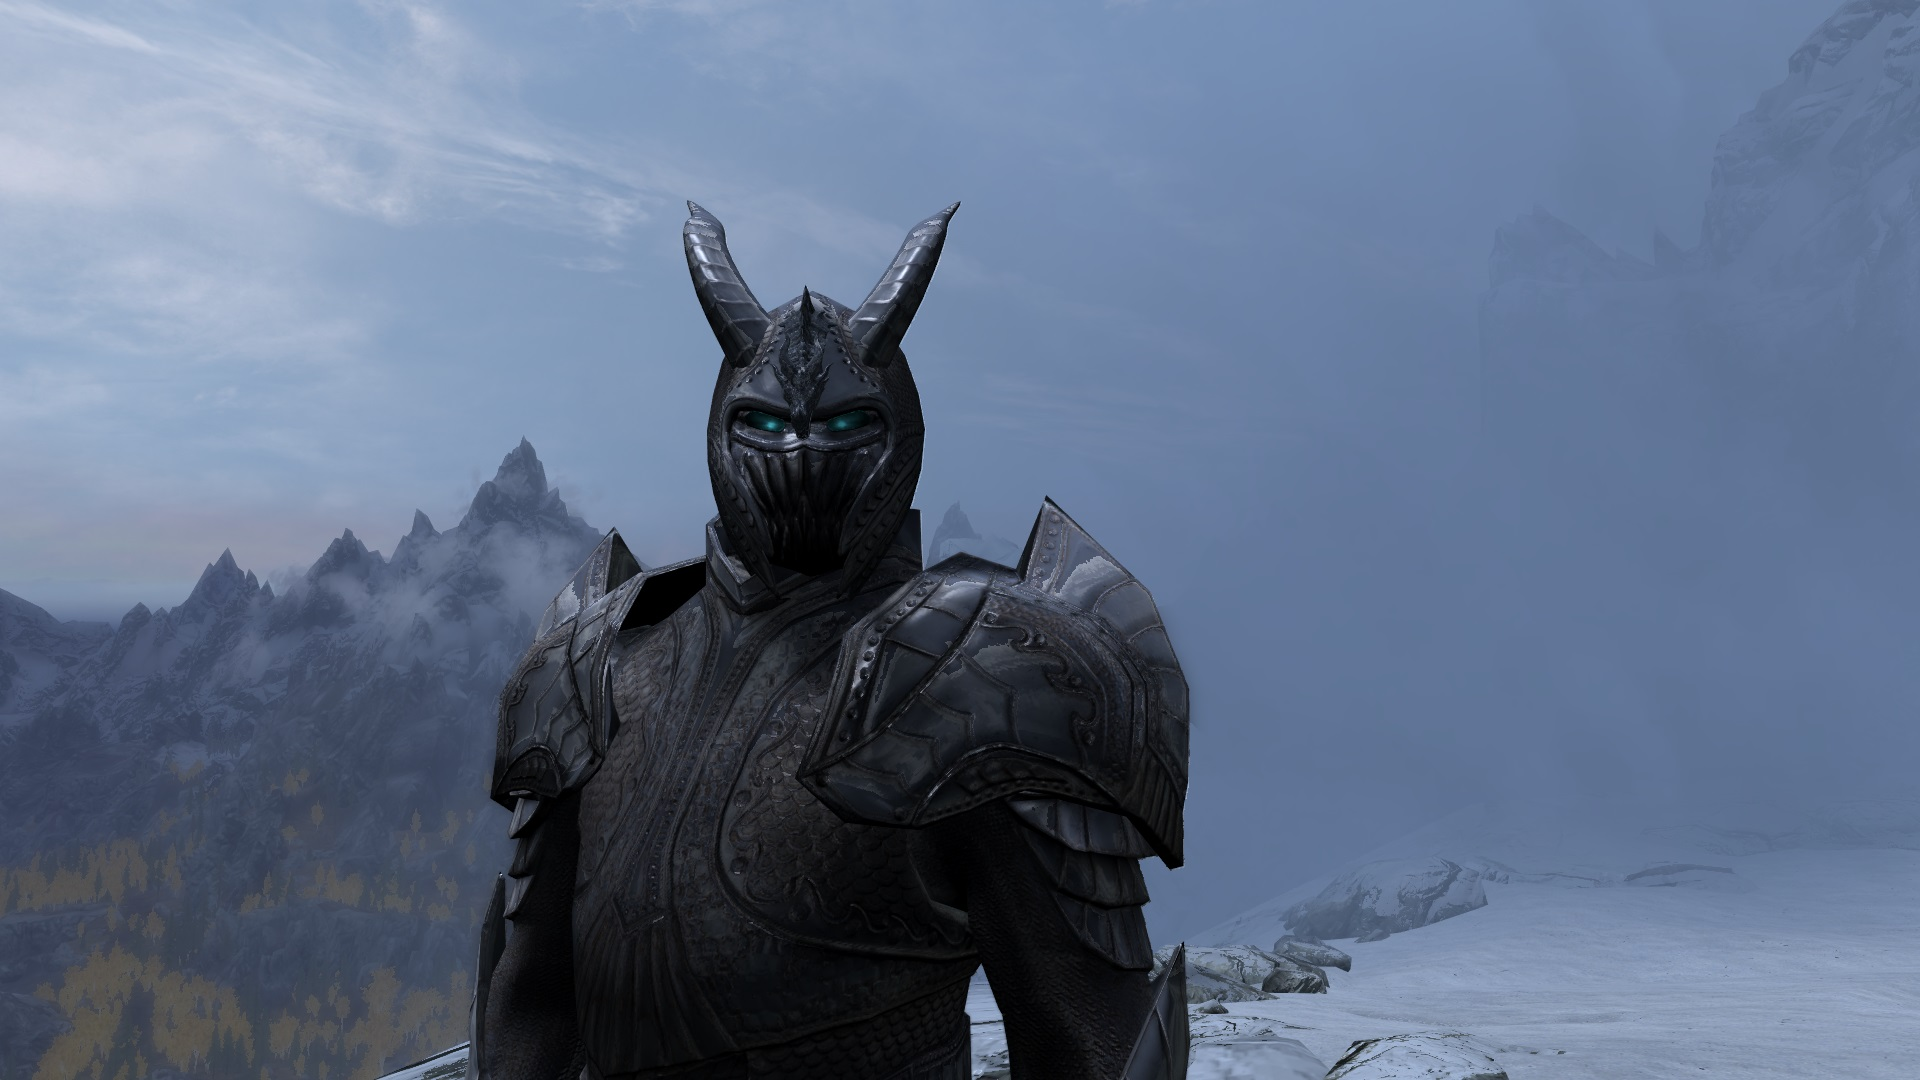 Ancient Dragon Knight Armor By Newermind43 At Skyrim Nexus Mods And Community Dragon knight armor v3 se by hothtrooper44 xbox one: ancient dragon knight armor by